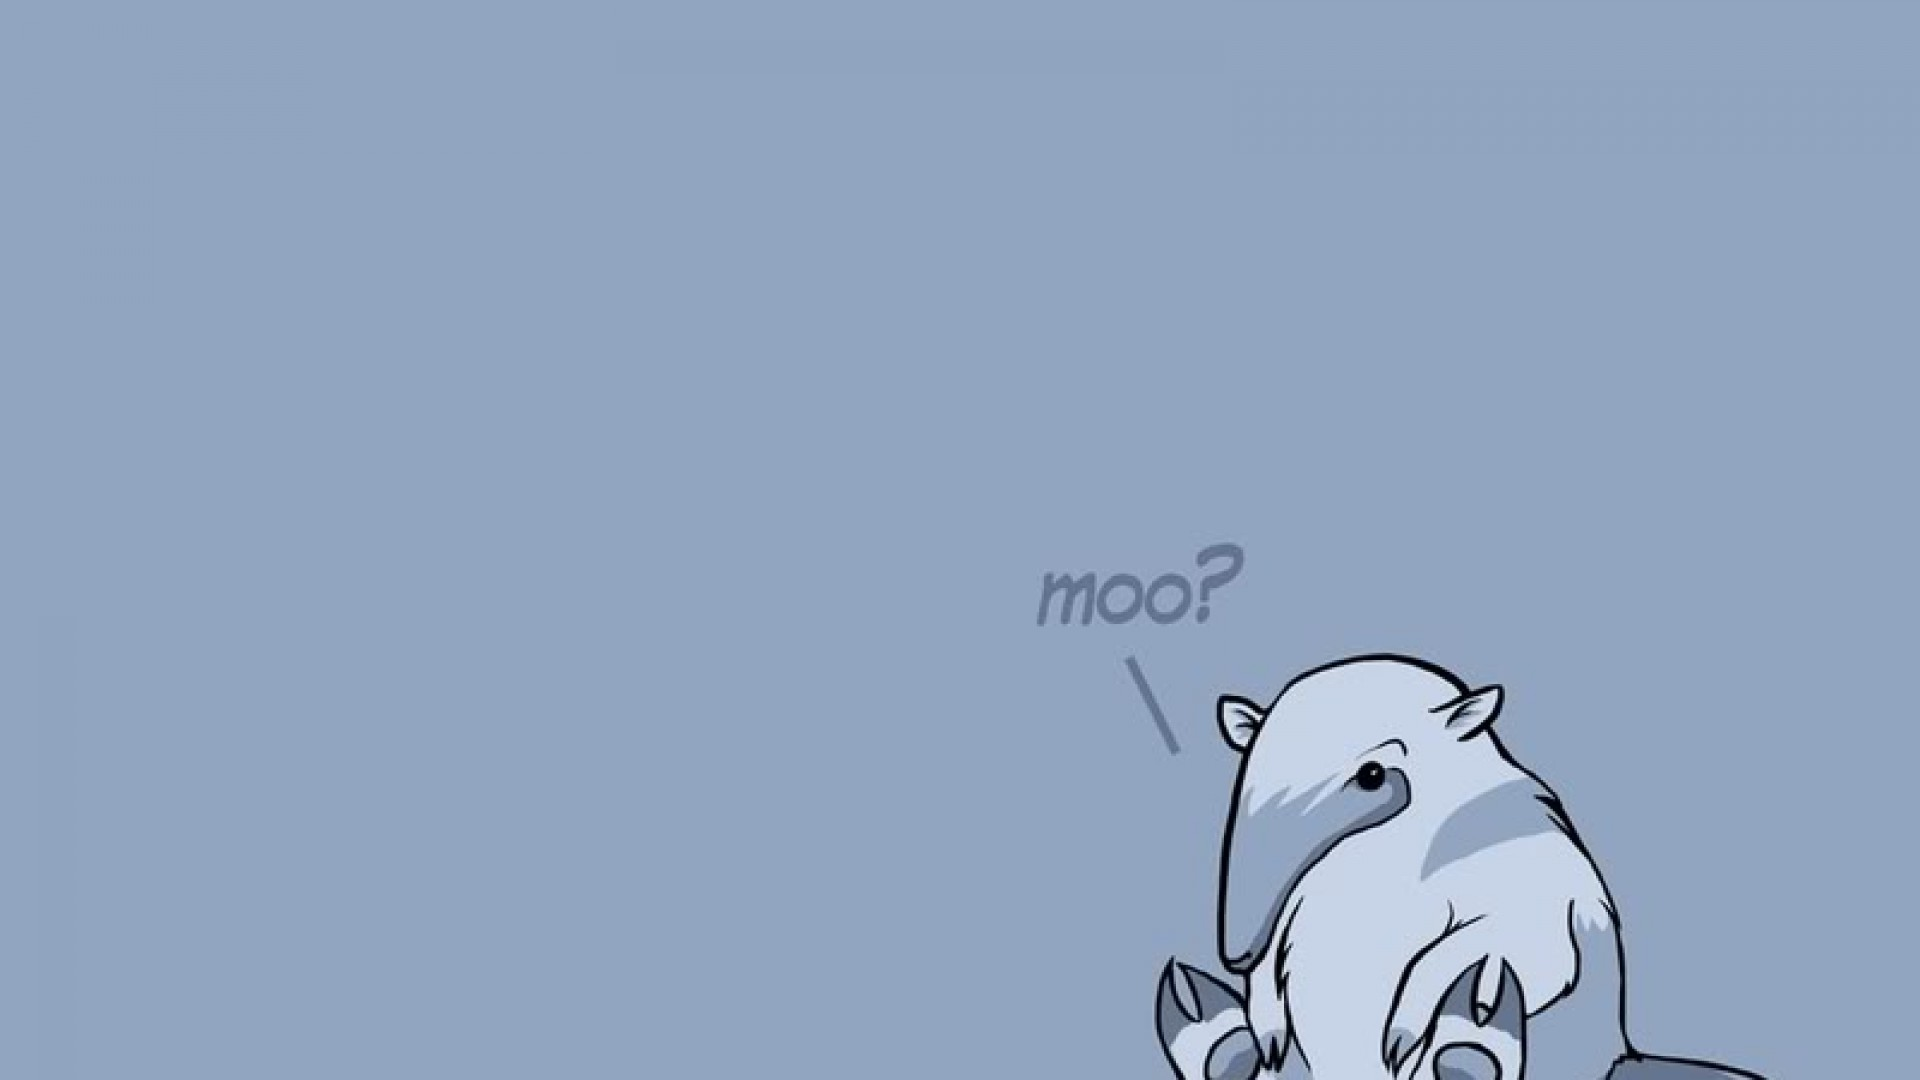 The Anteater Says Moo HD Wallpaper